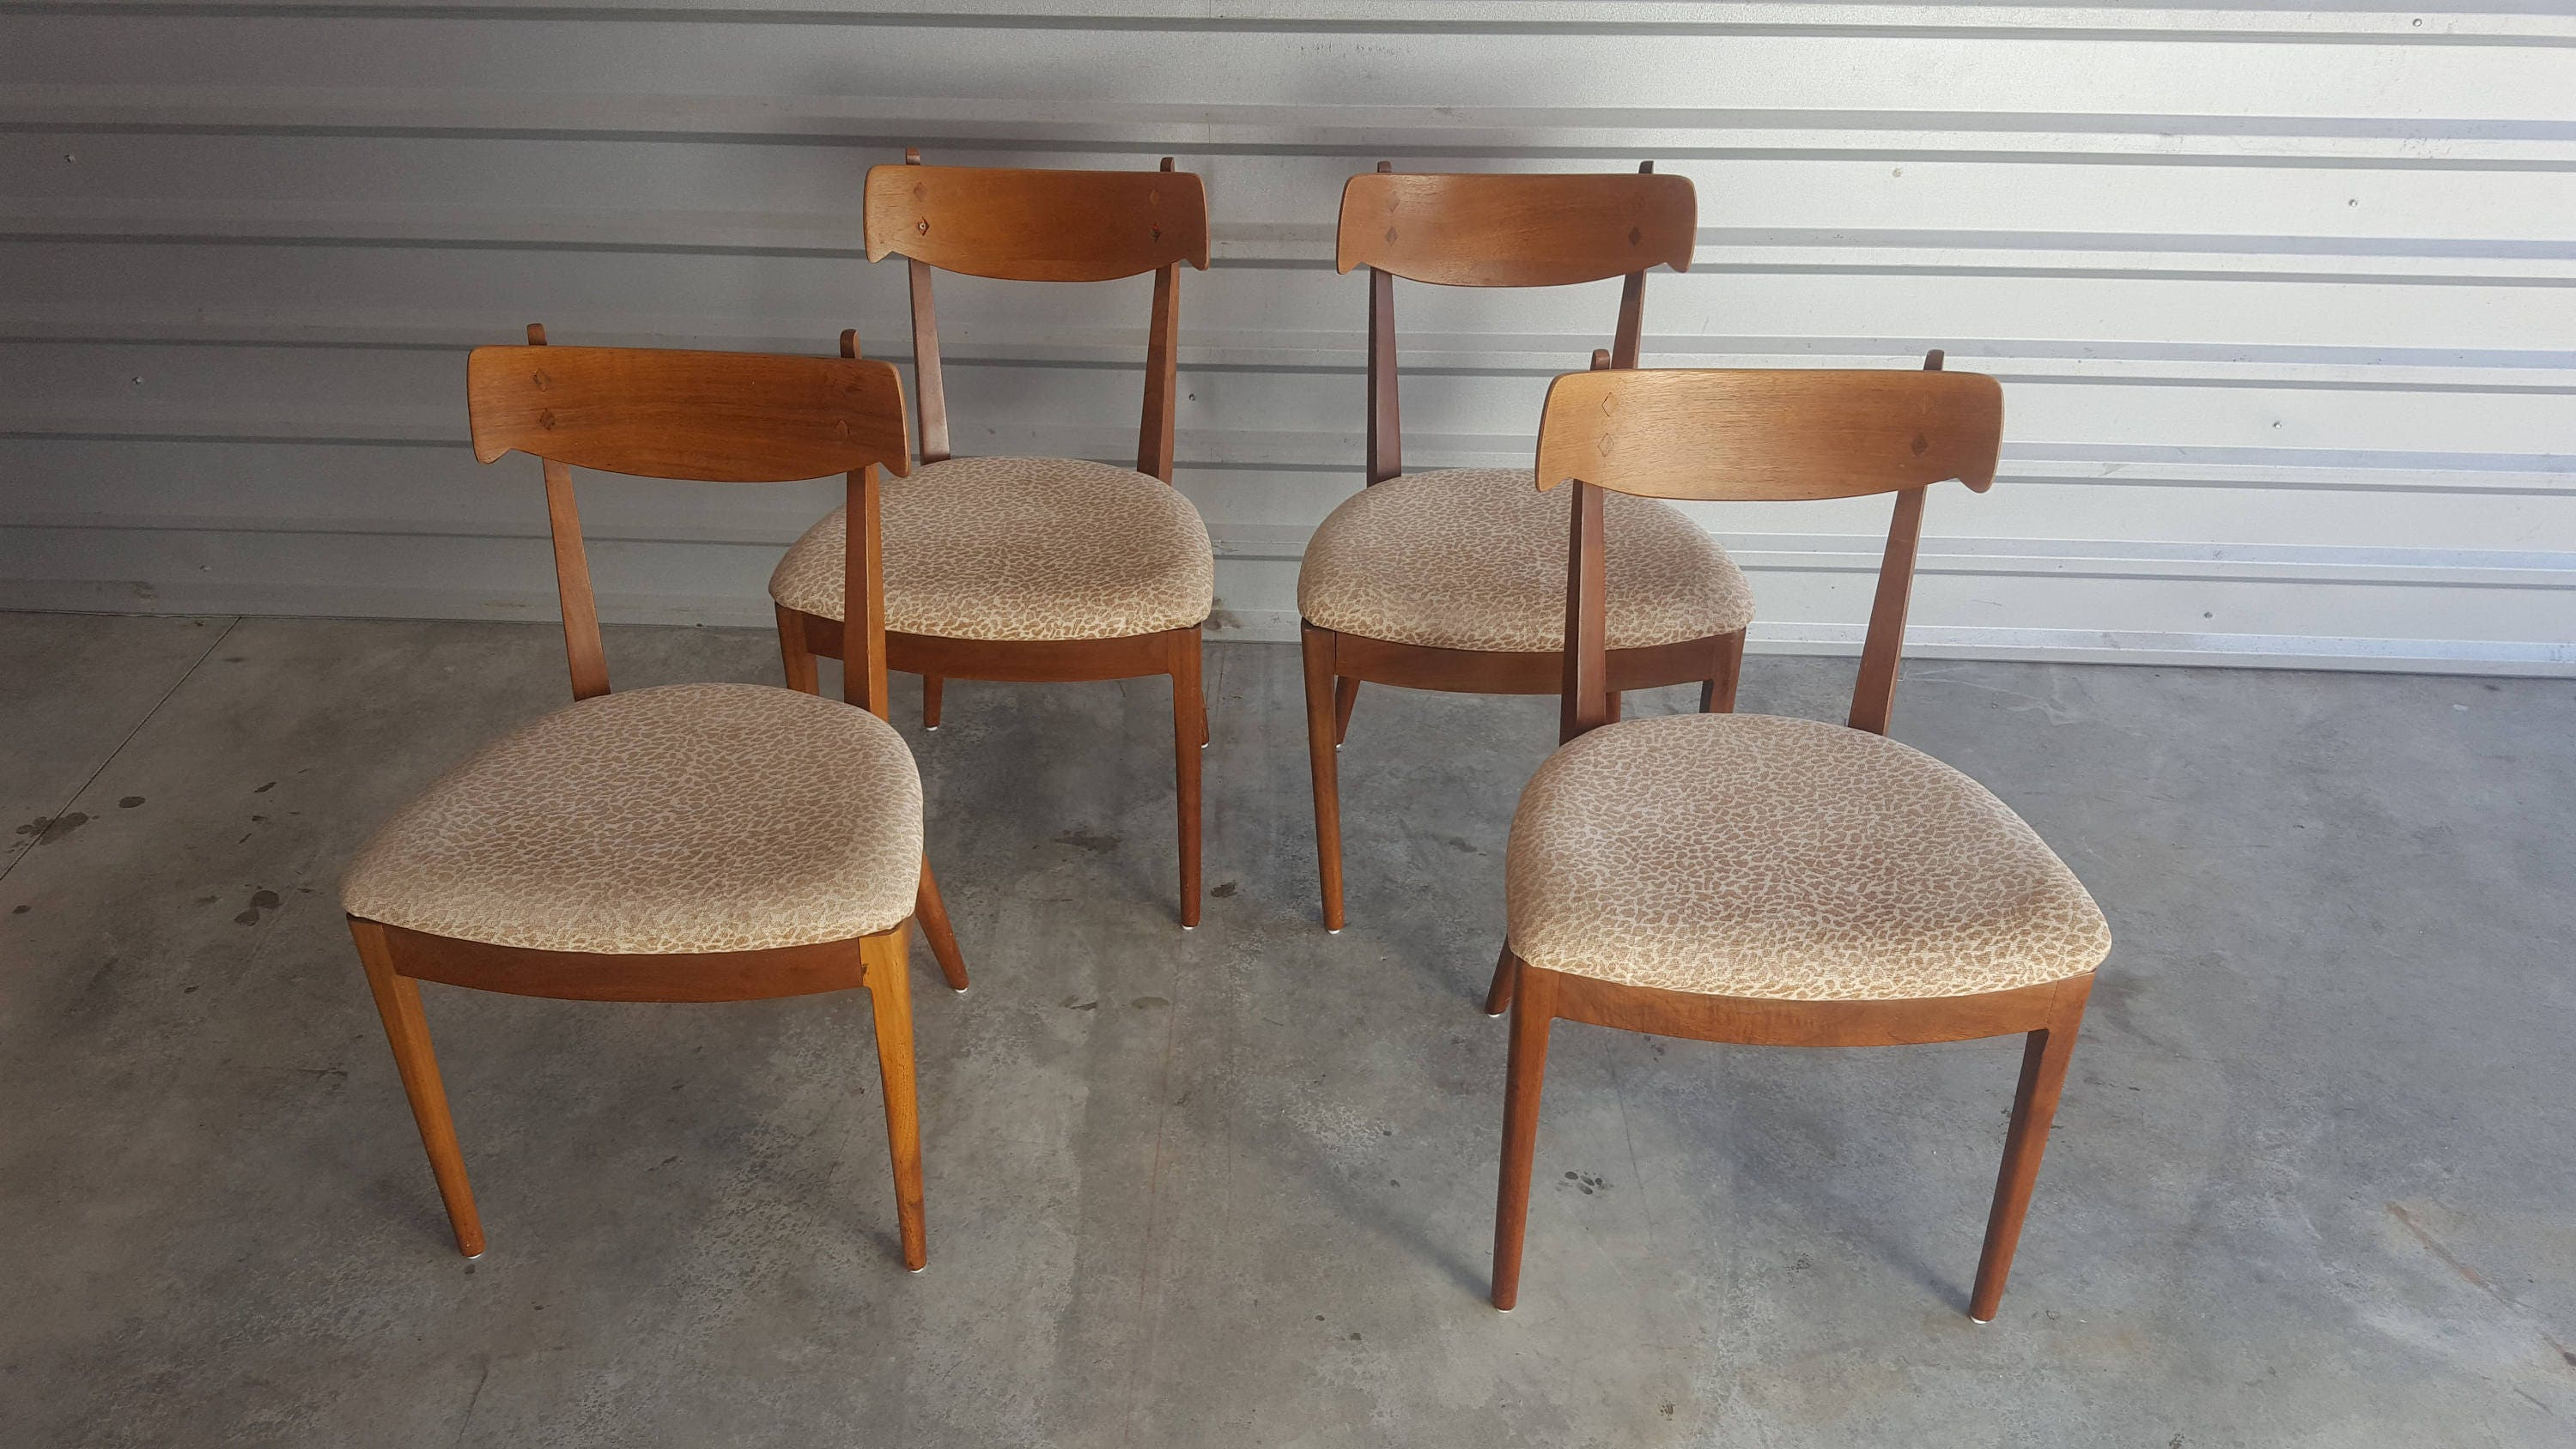 Vintage Mid Century Drexel Dining Chairs   Kipp Stewart For Drexel  Deceleration   4 Dining Room Chairs